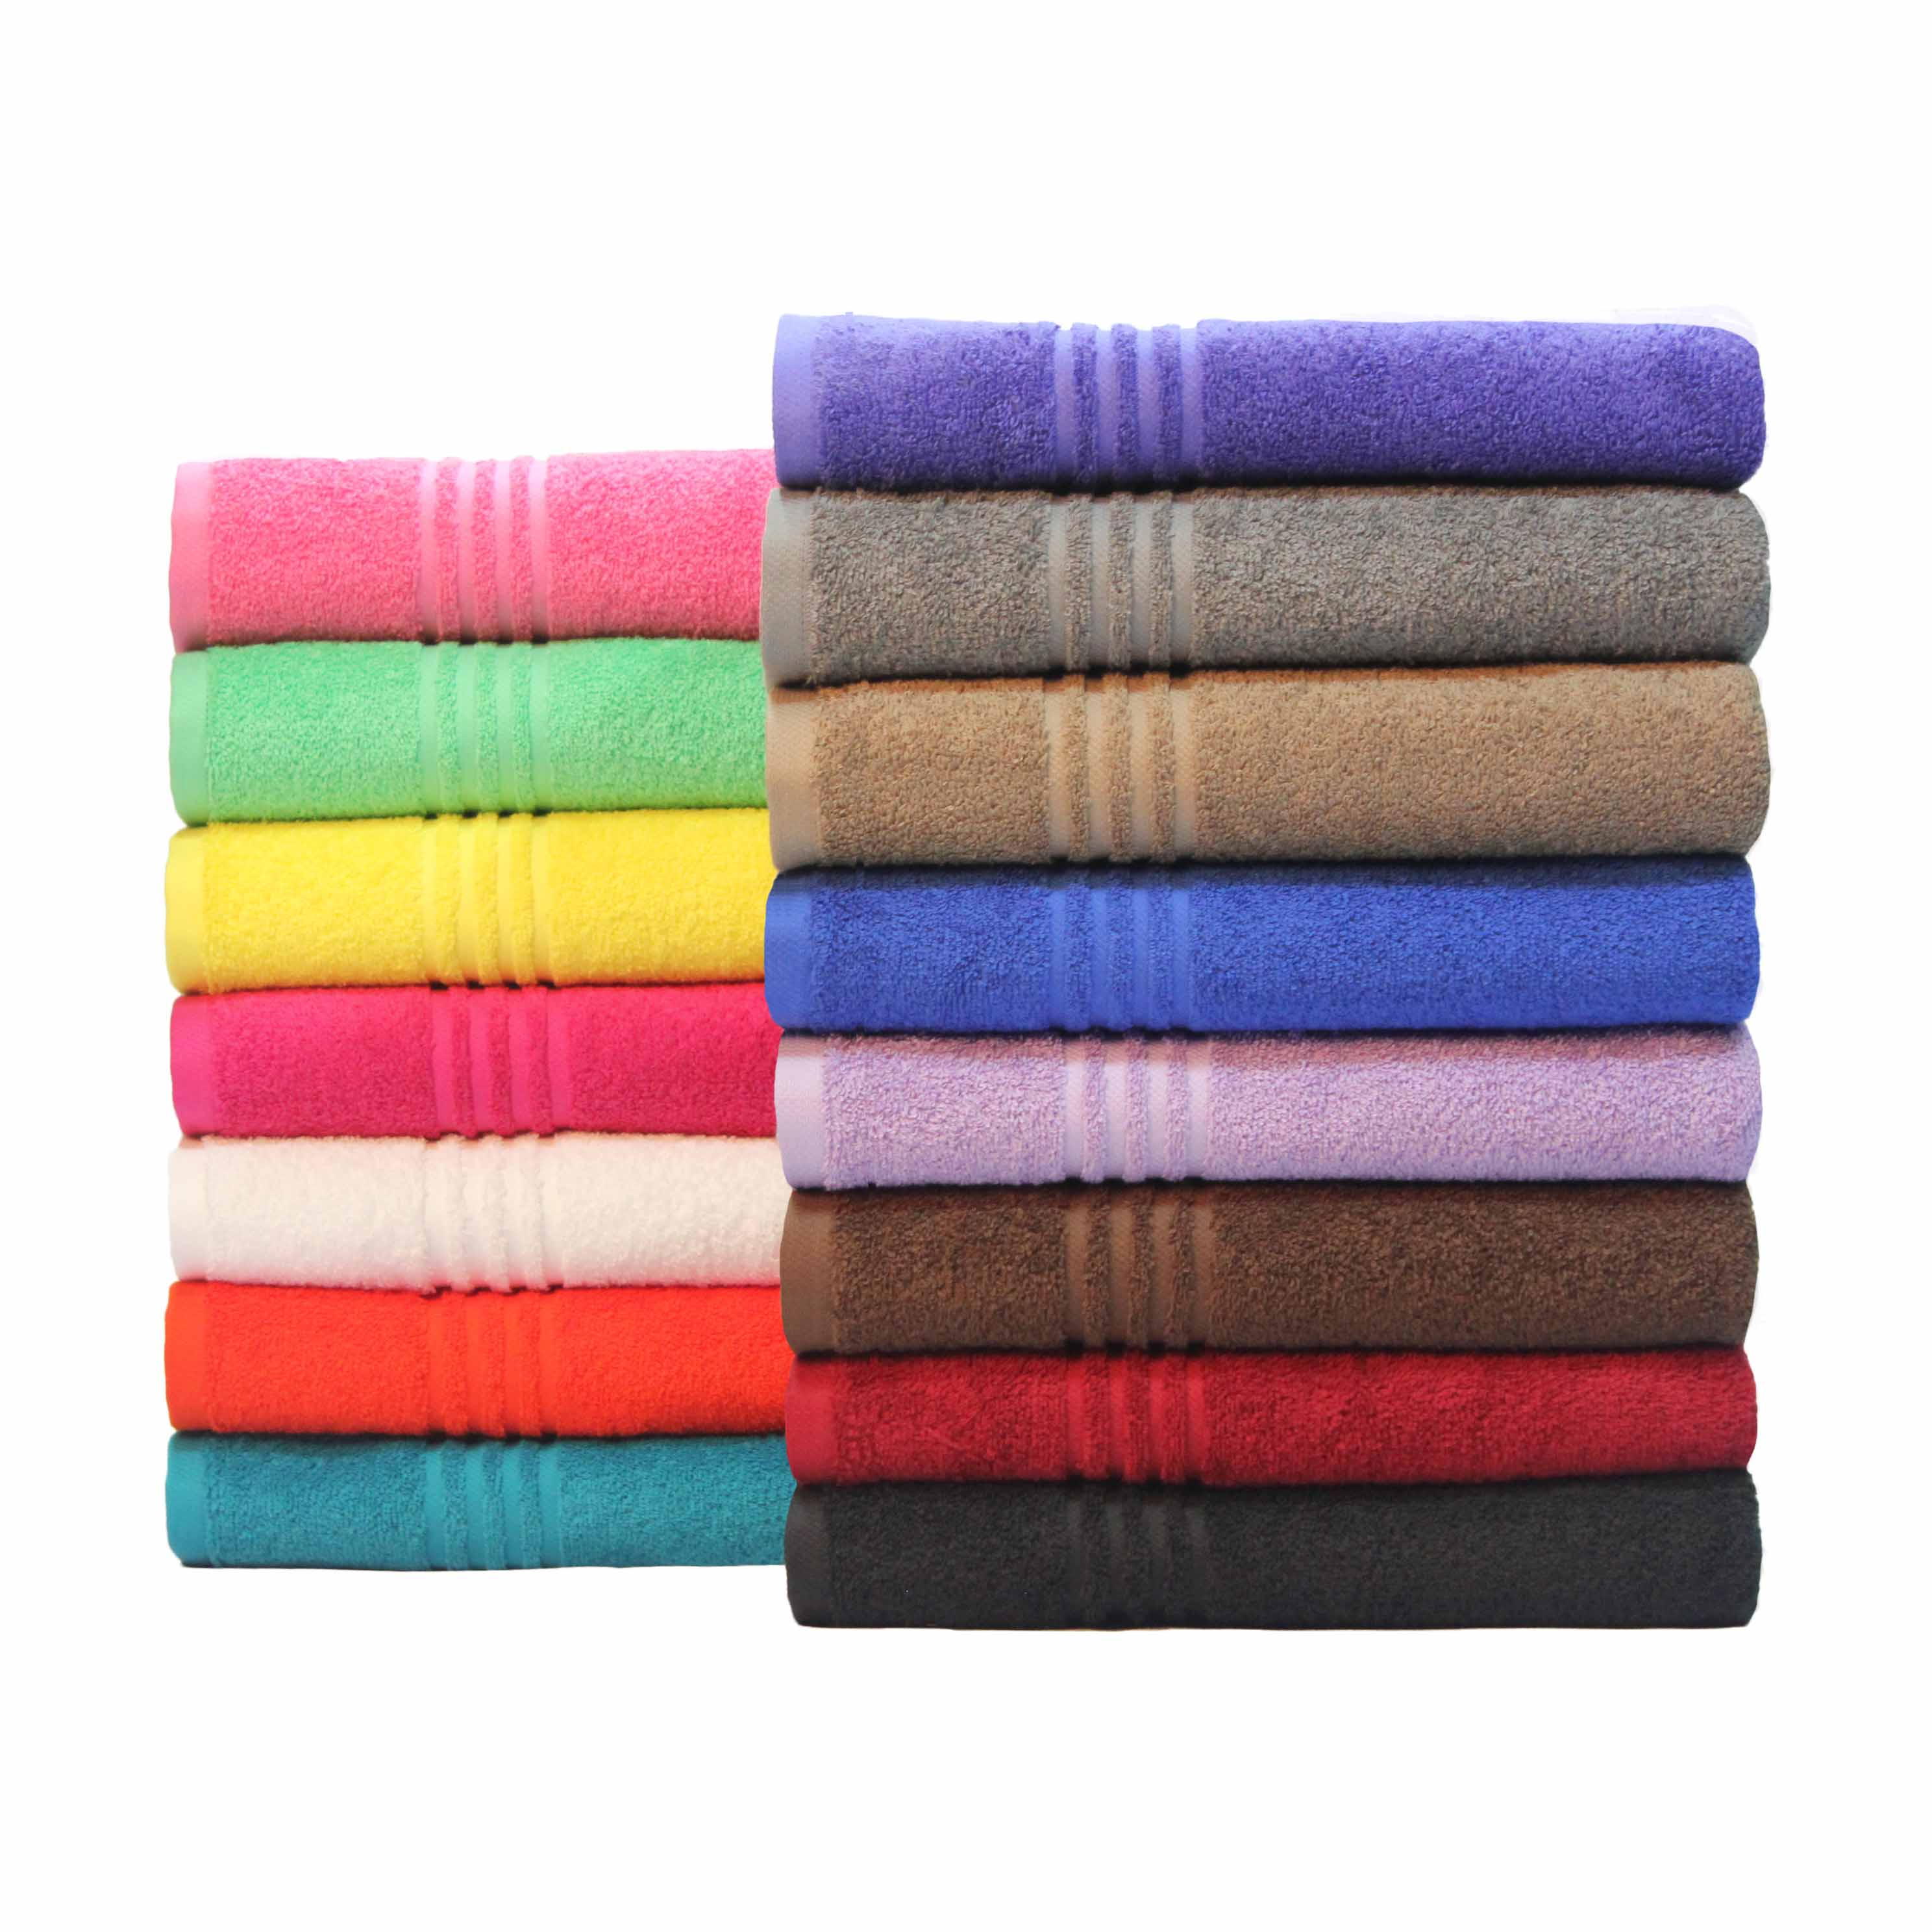 Mainstays Essential True Colors Bath Towel Collection, 1 Each